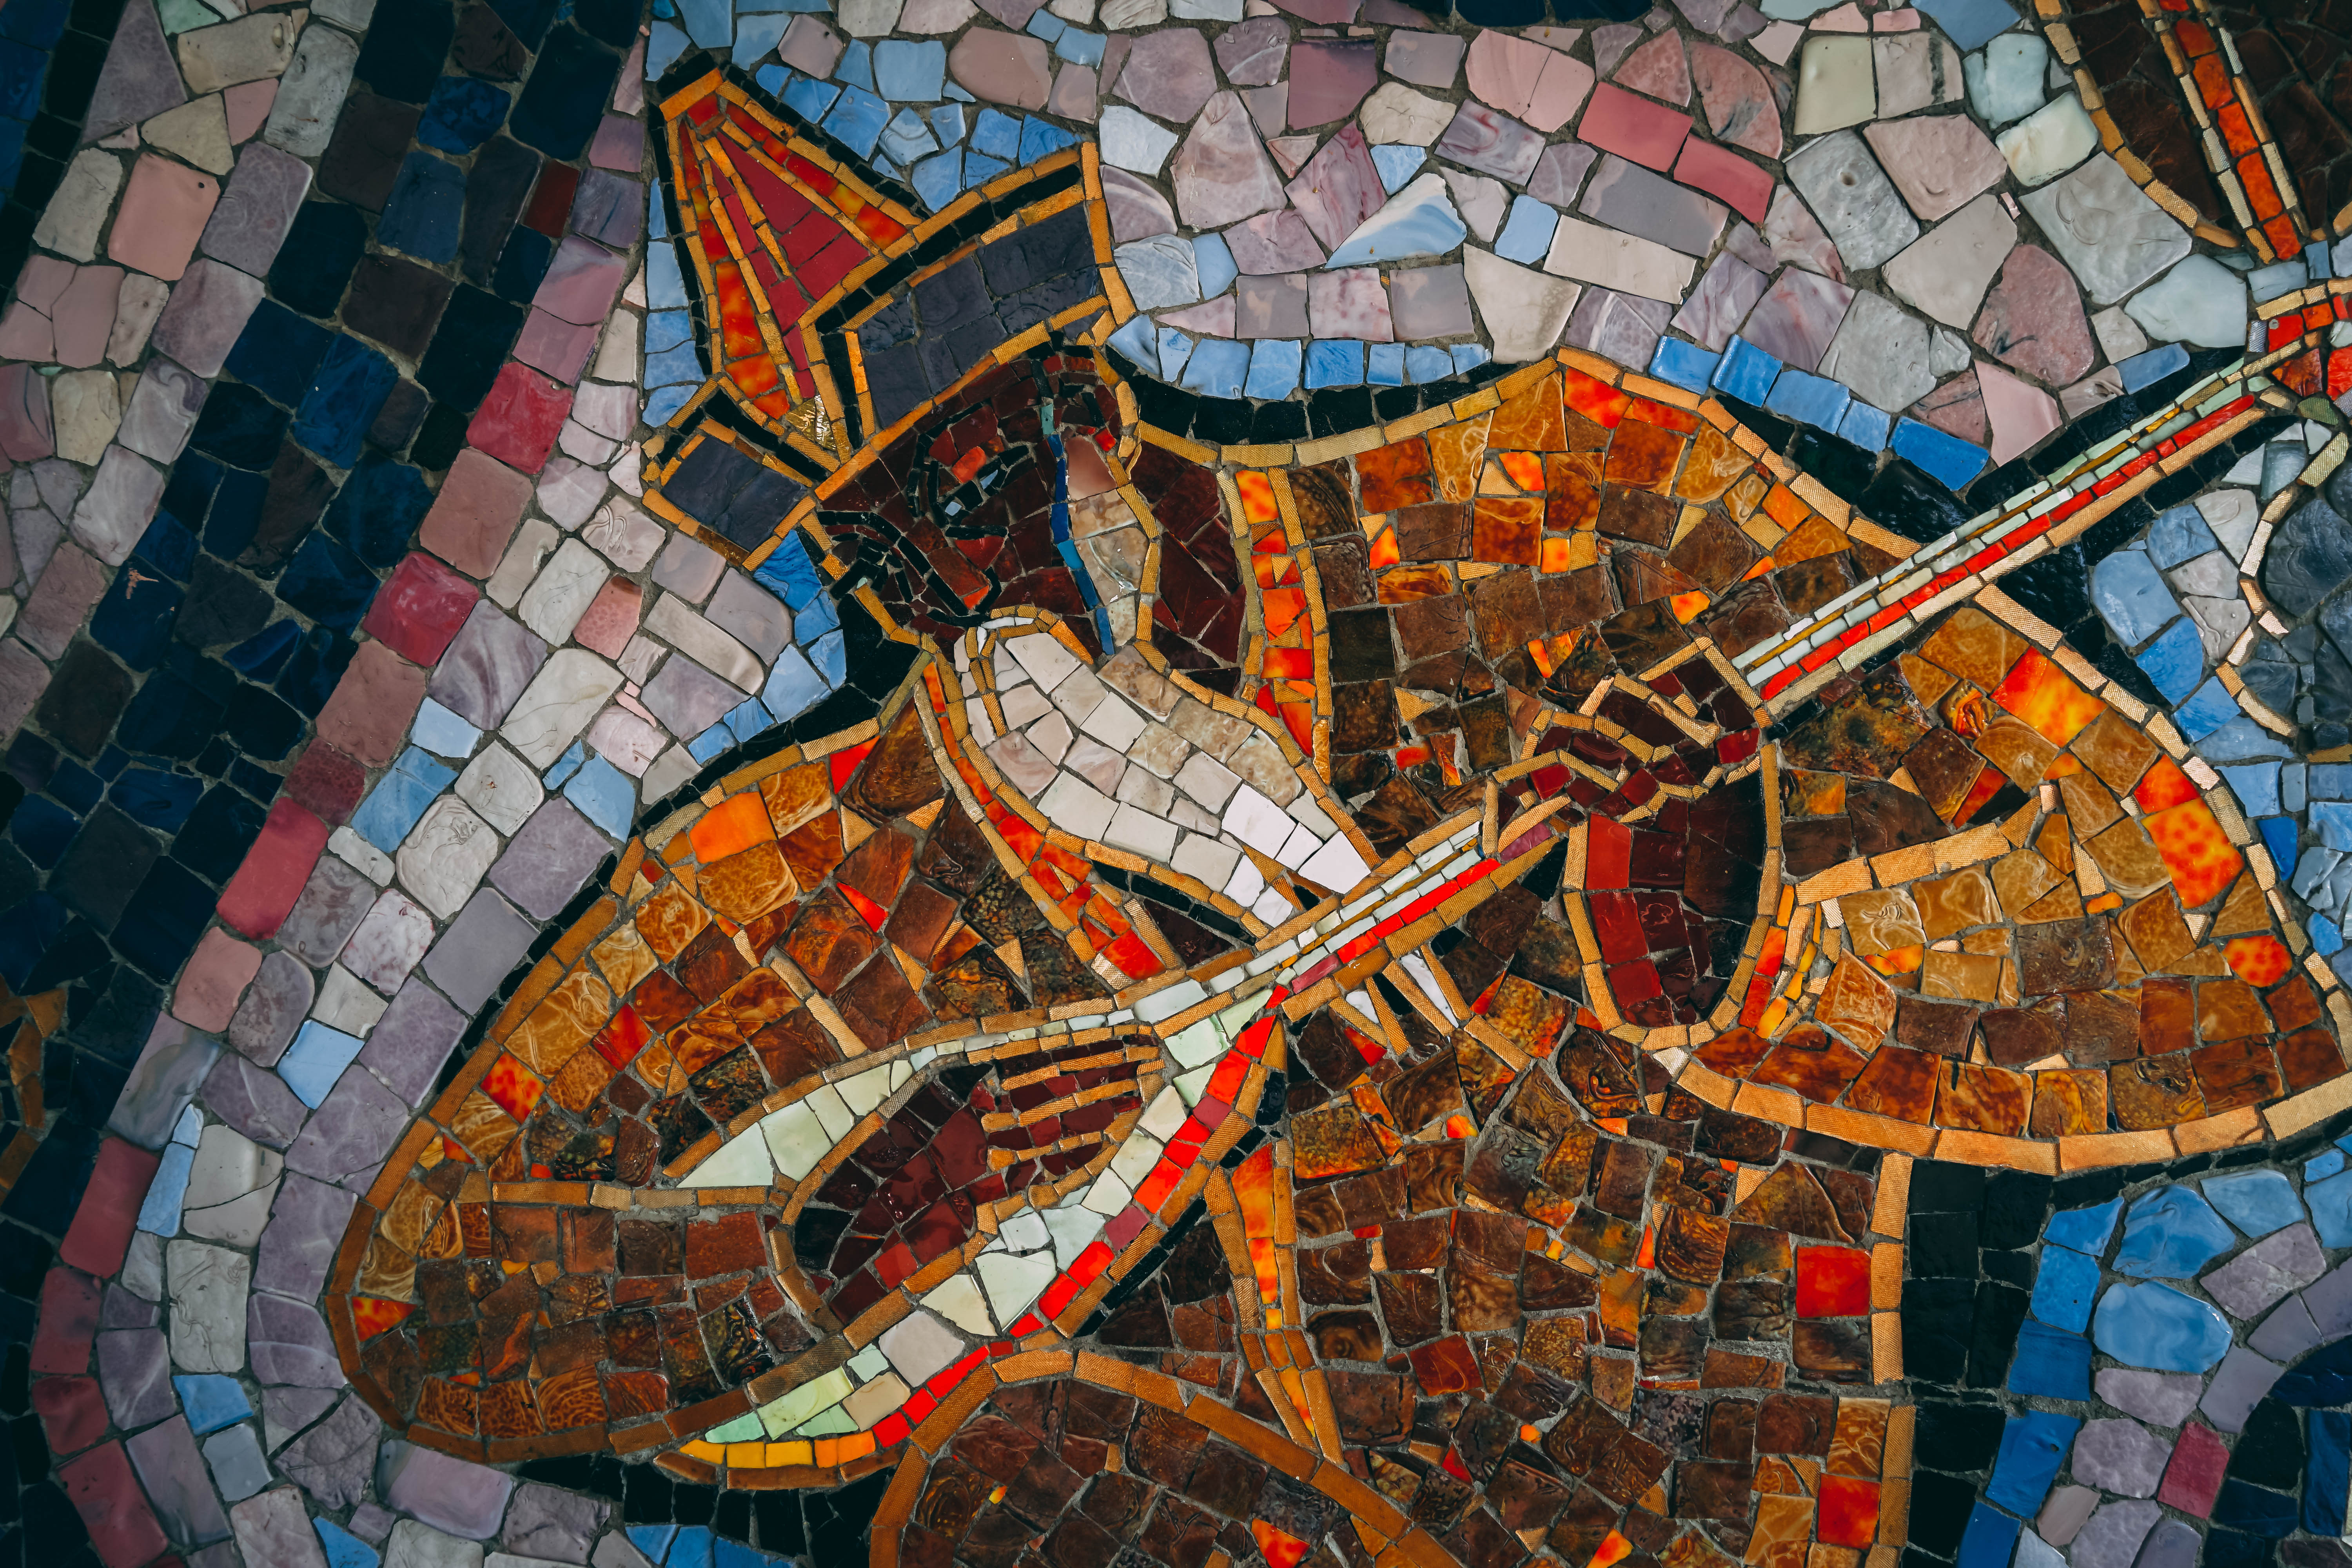 Kazakh musician with national instrument on Almaty mosaics